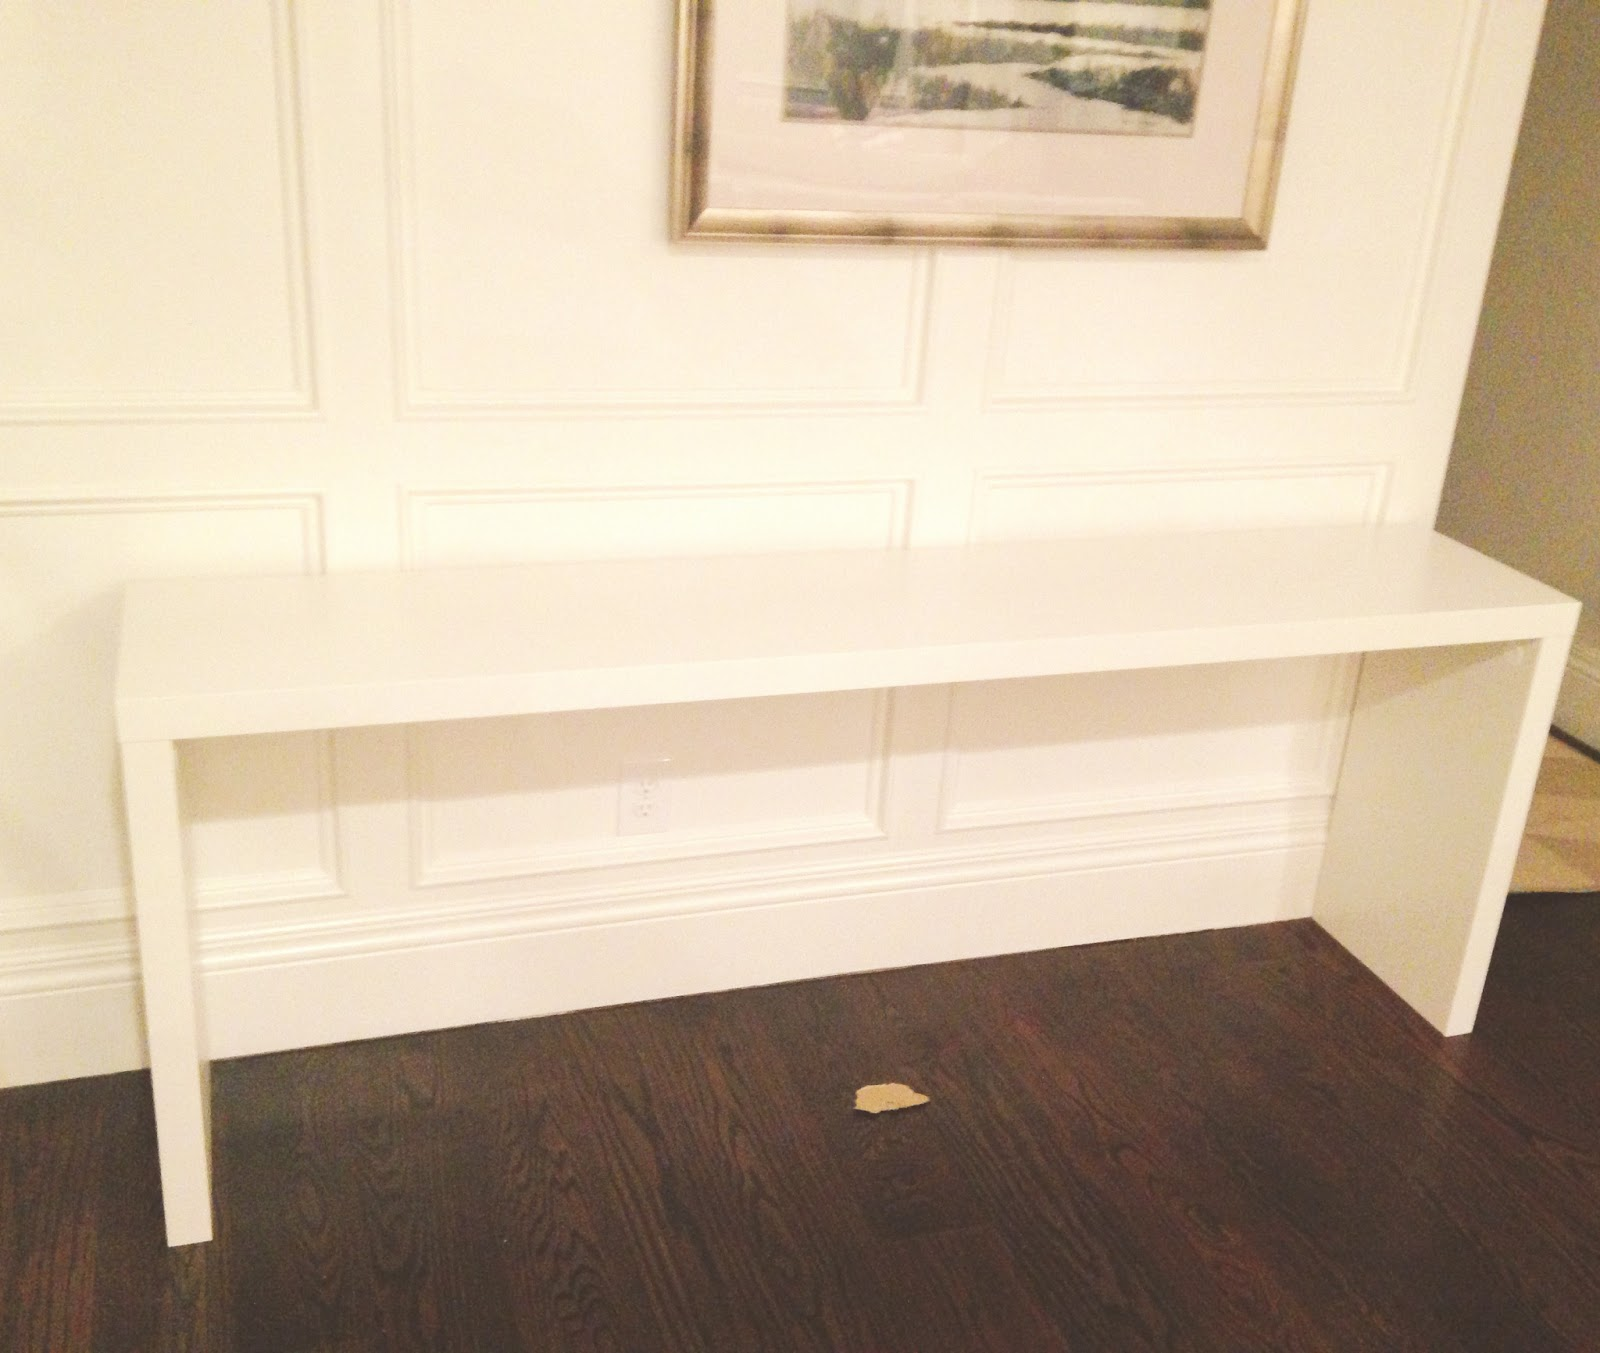 Lack Sofa Table As Desk Good Quality Beds Canada Ikea Console Over Bed  Nazarm